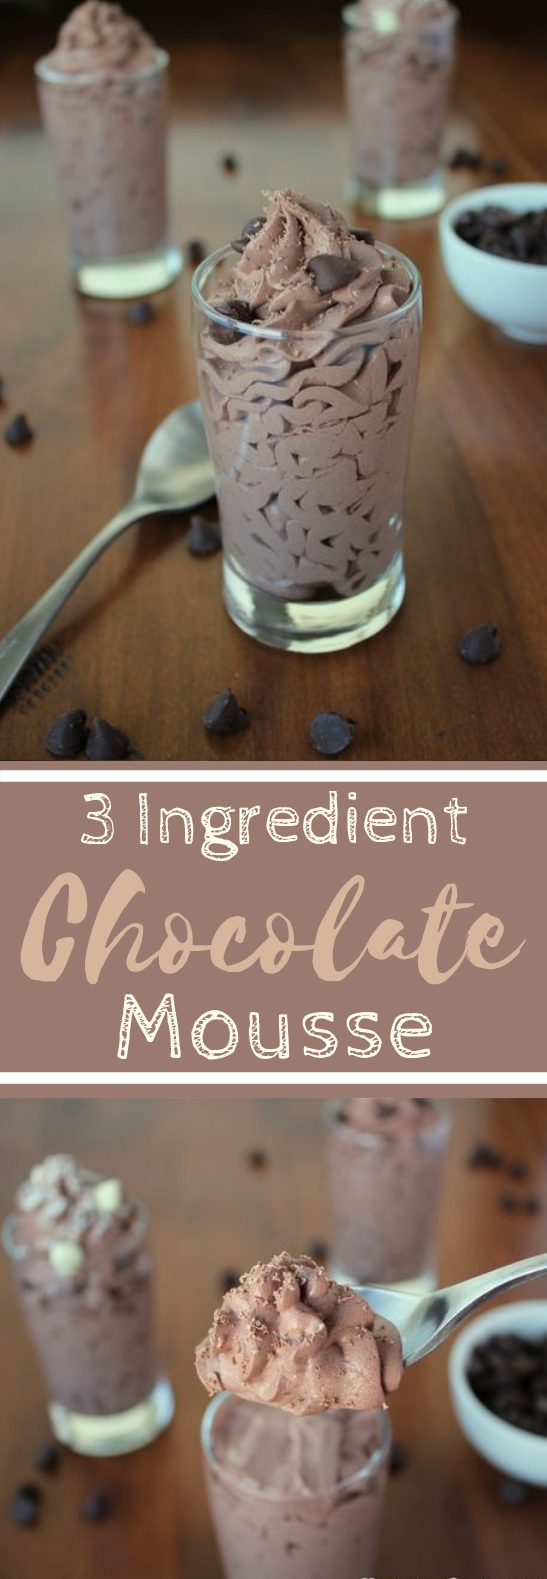 Easy 3-Ingredient Chocolate Mousse #dessert #chocolate